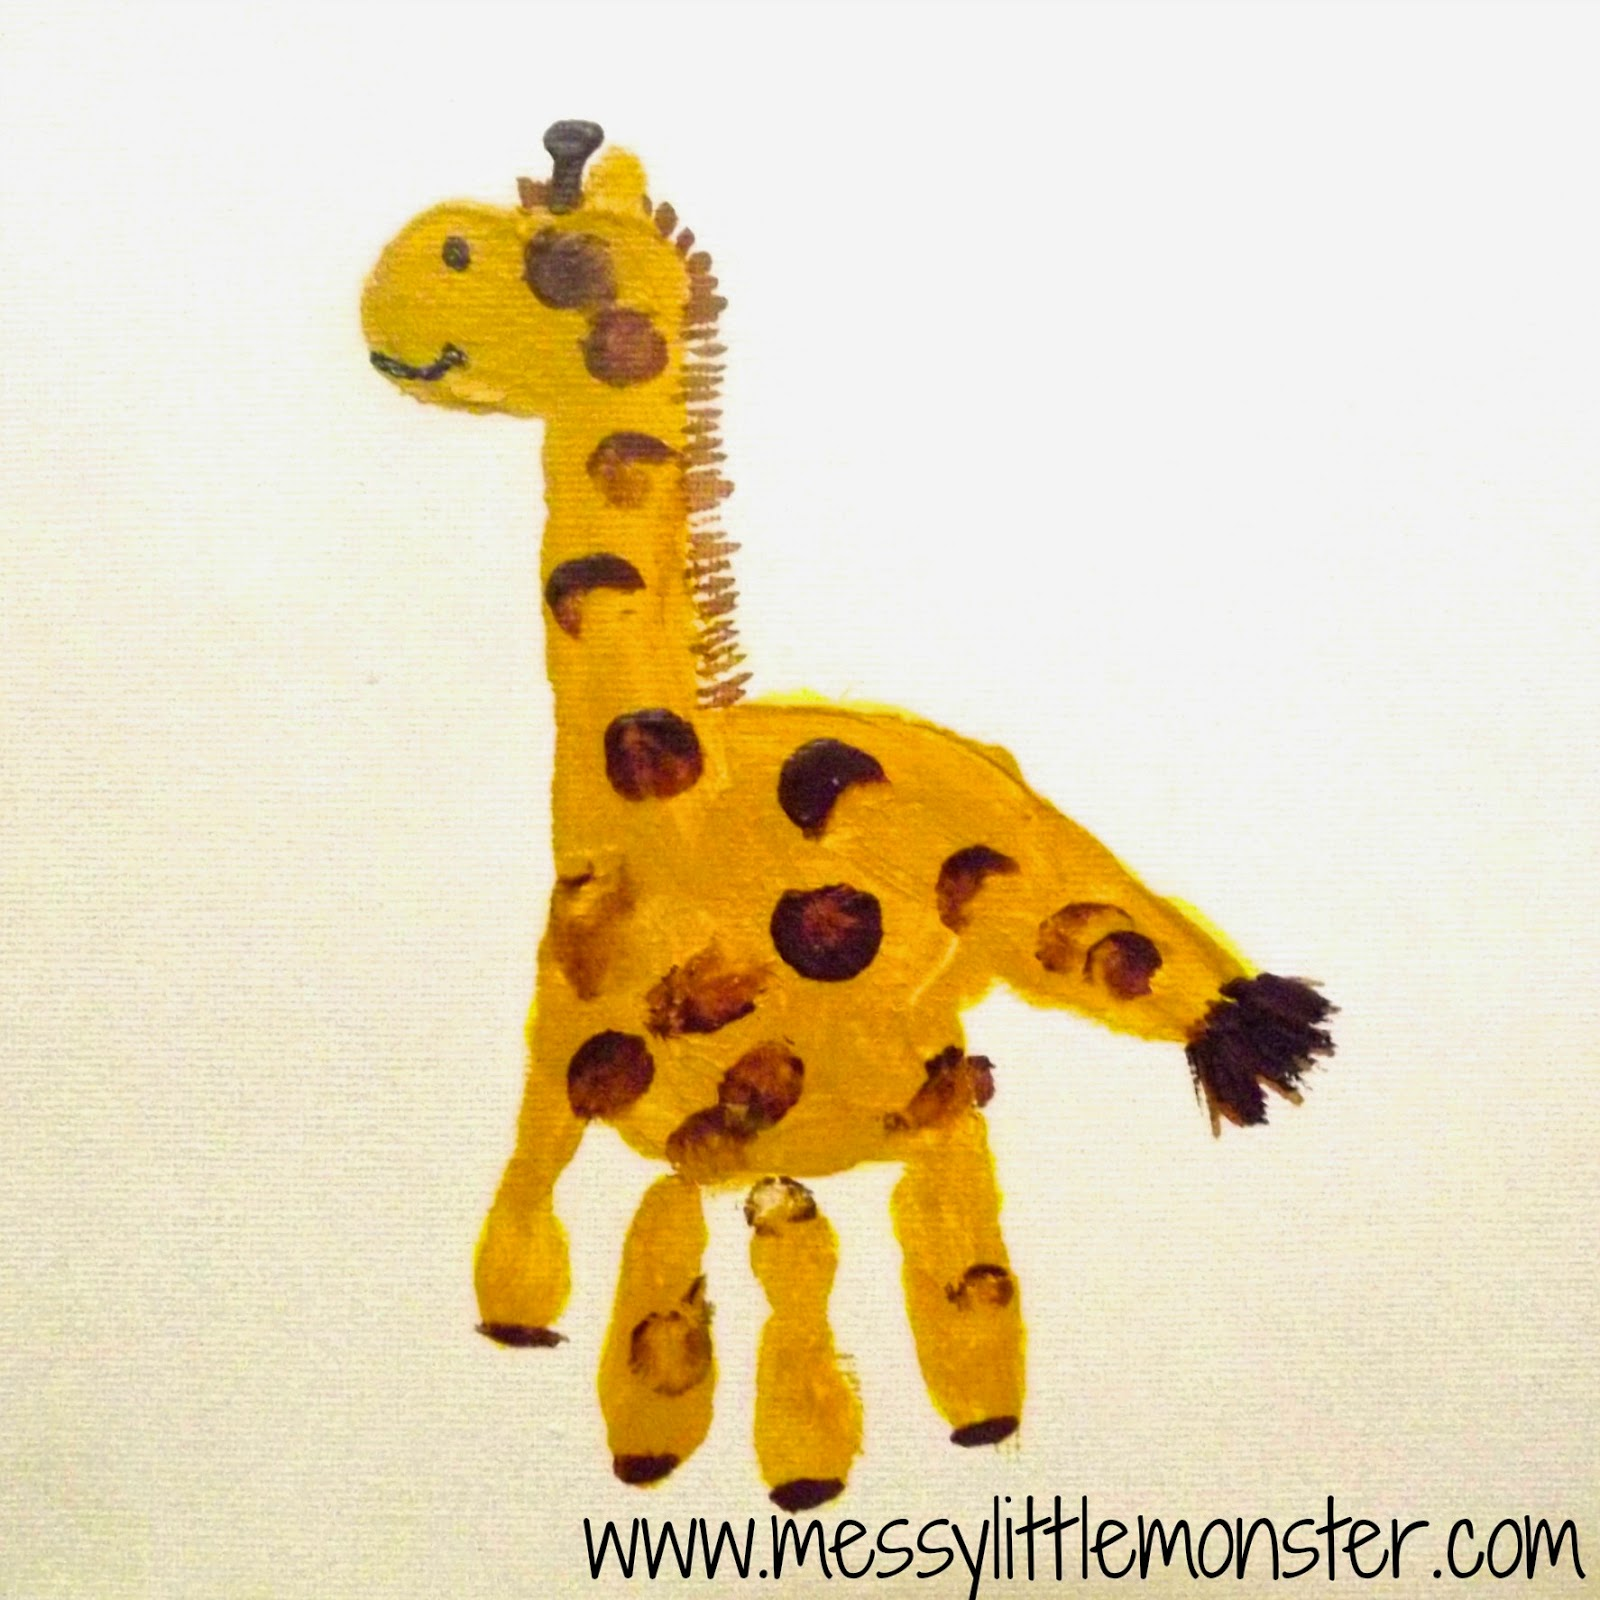 Giraffe craft - Animal handprints on canvas.  Simple gift ideas for toddlers and preschoolers to make.